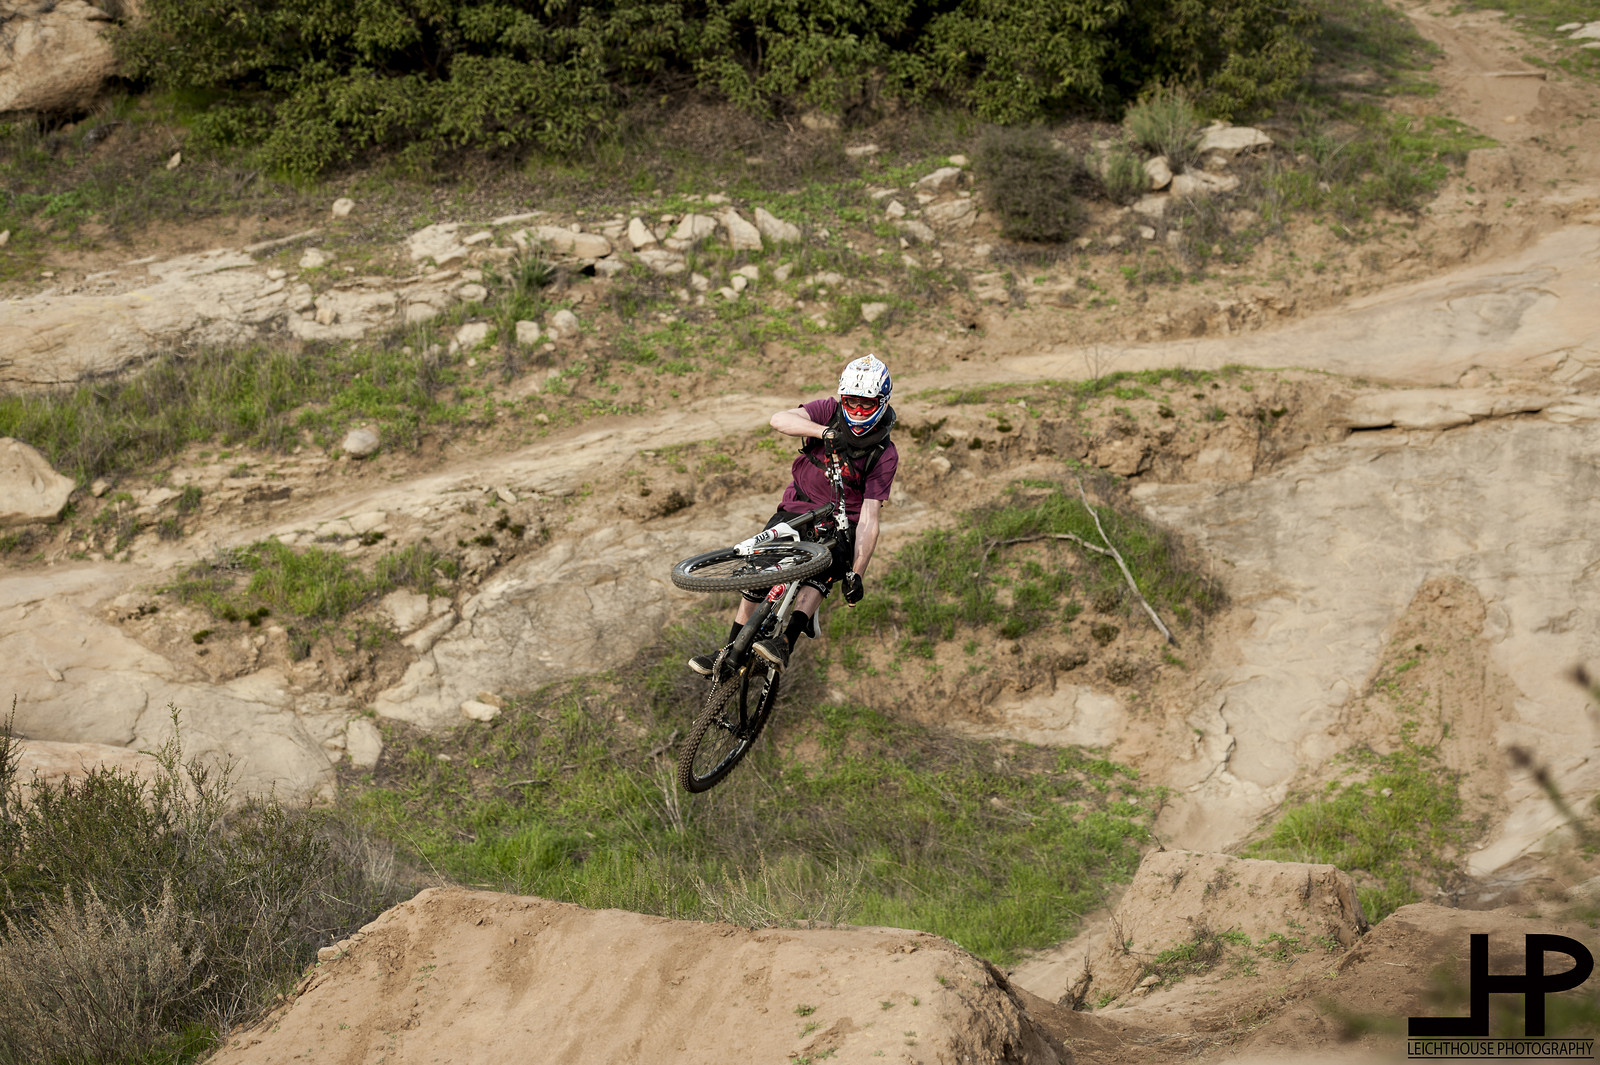 whippin - LeichtHouse photography - Mountain Biking Pictures - Vital MTB